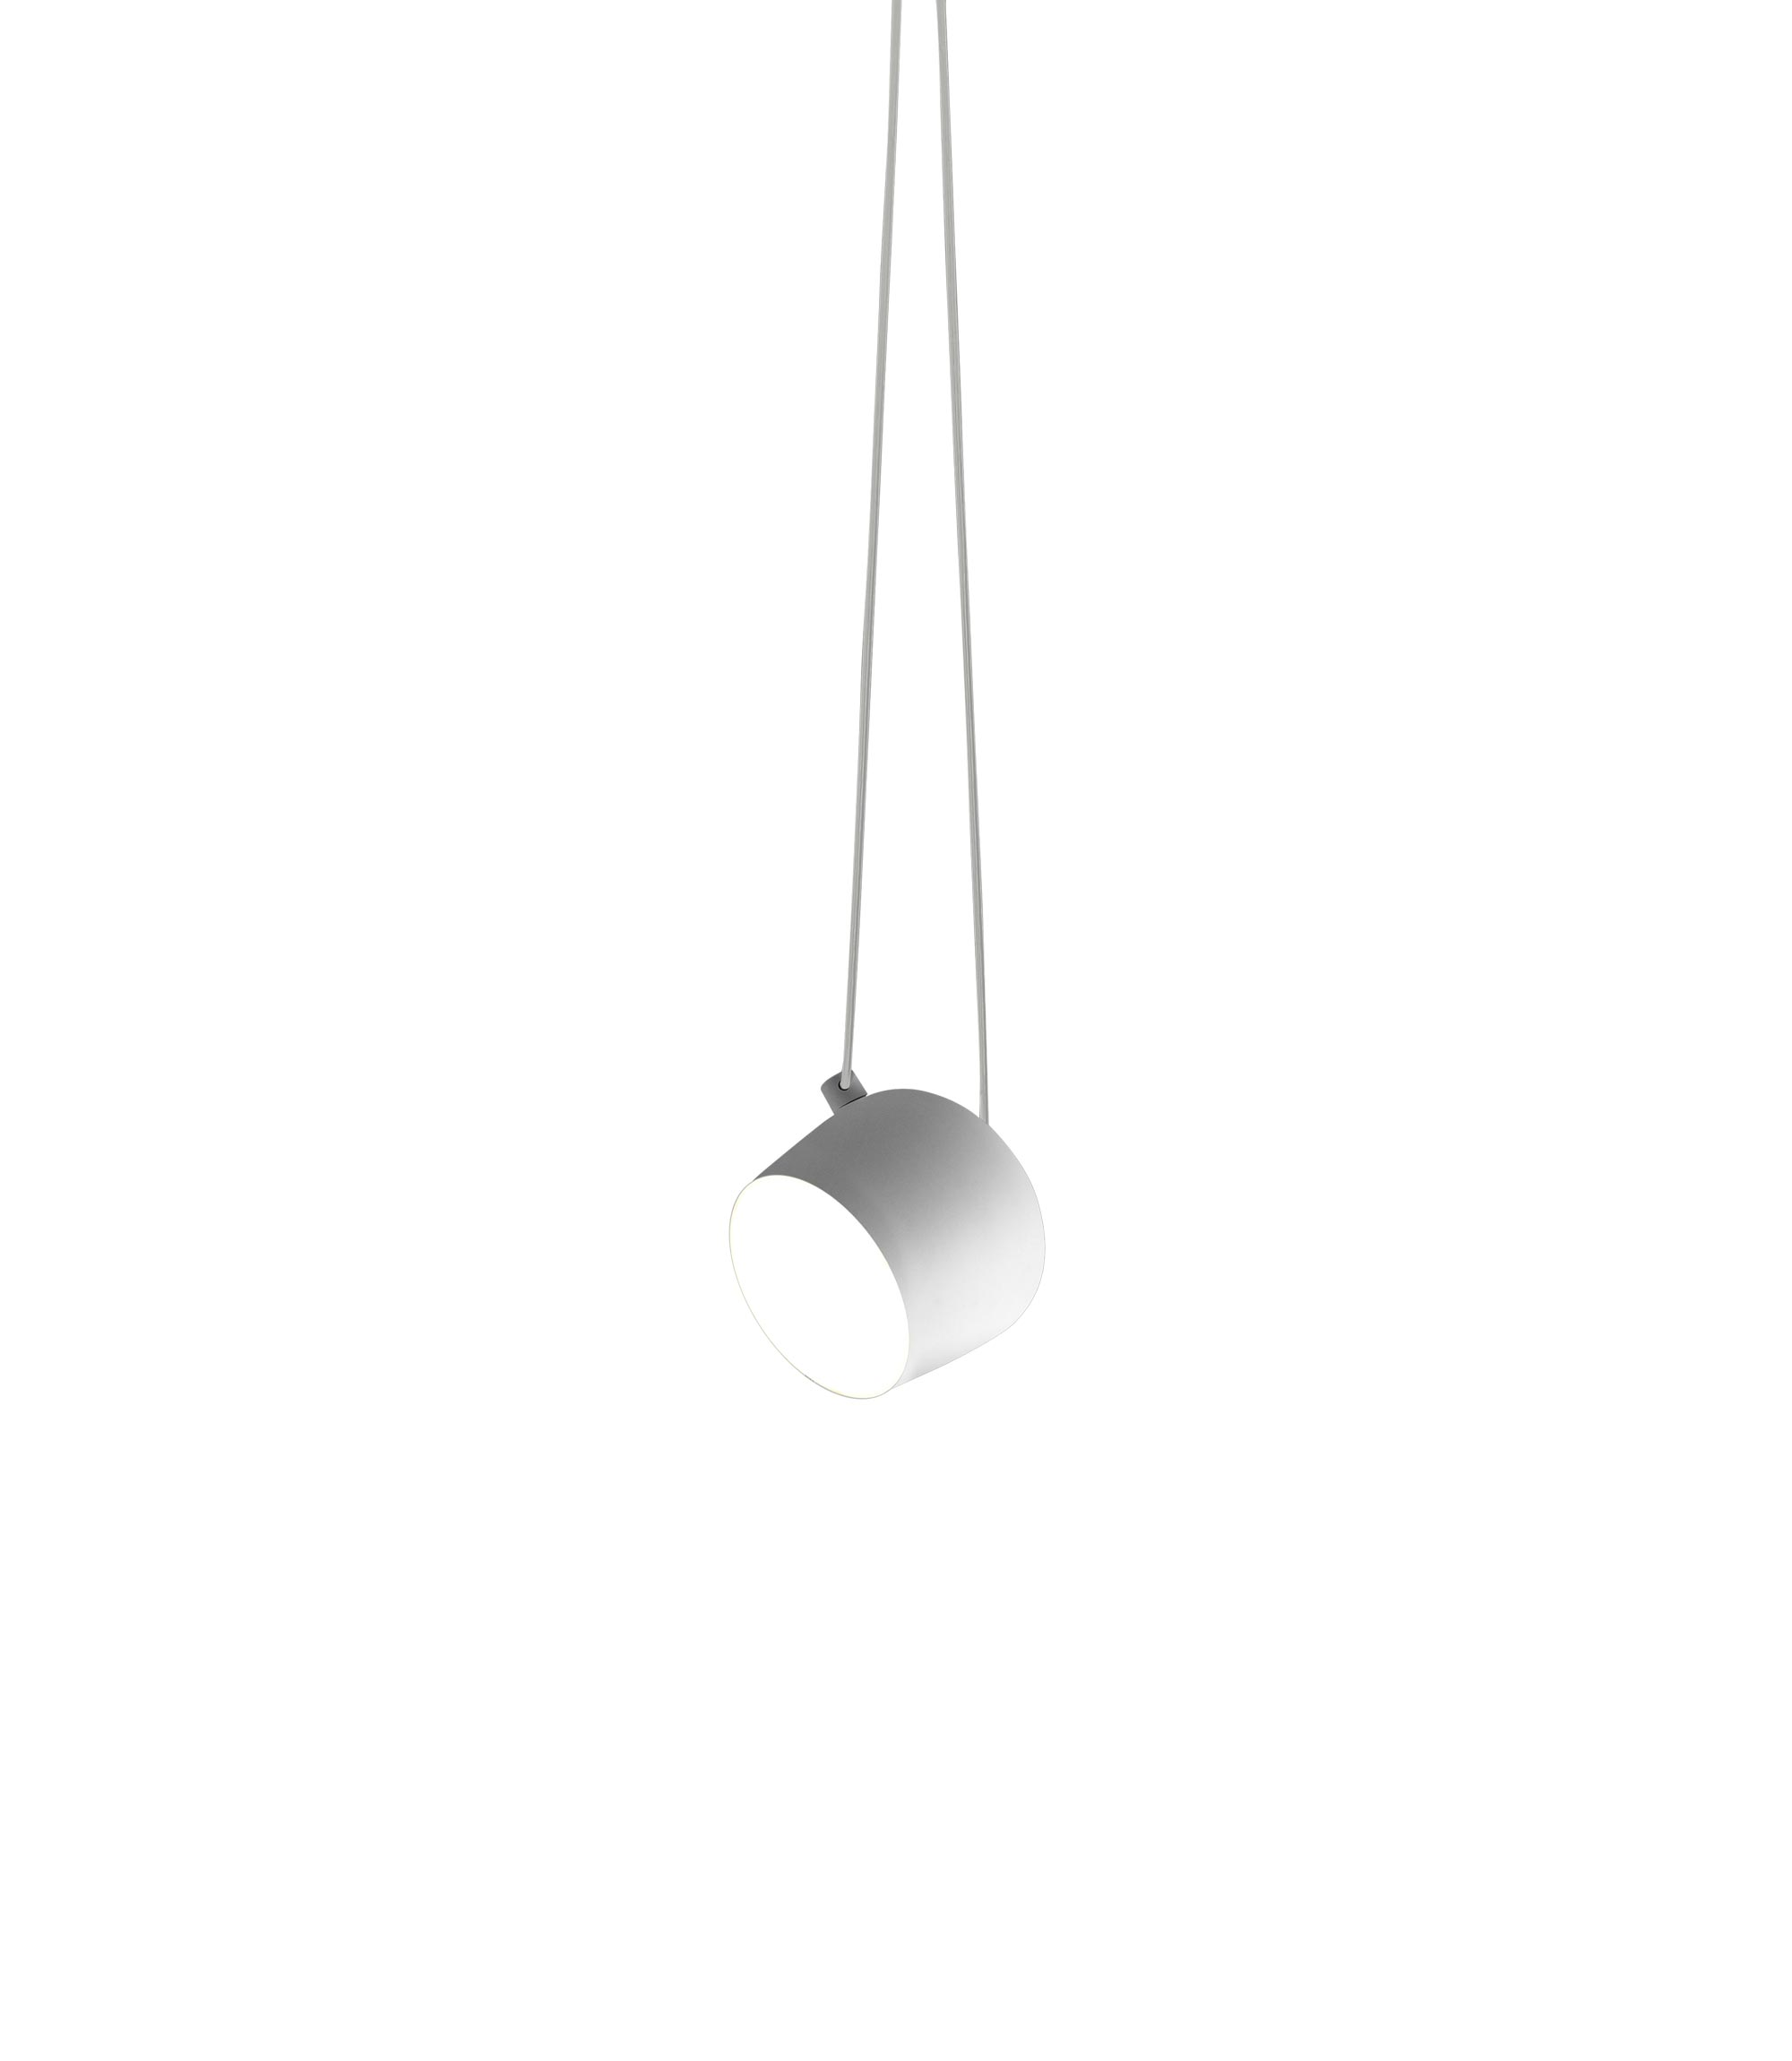 Aim small suspension bouroullec flos F0095009 product still life big